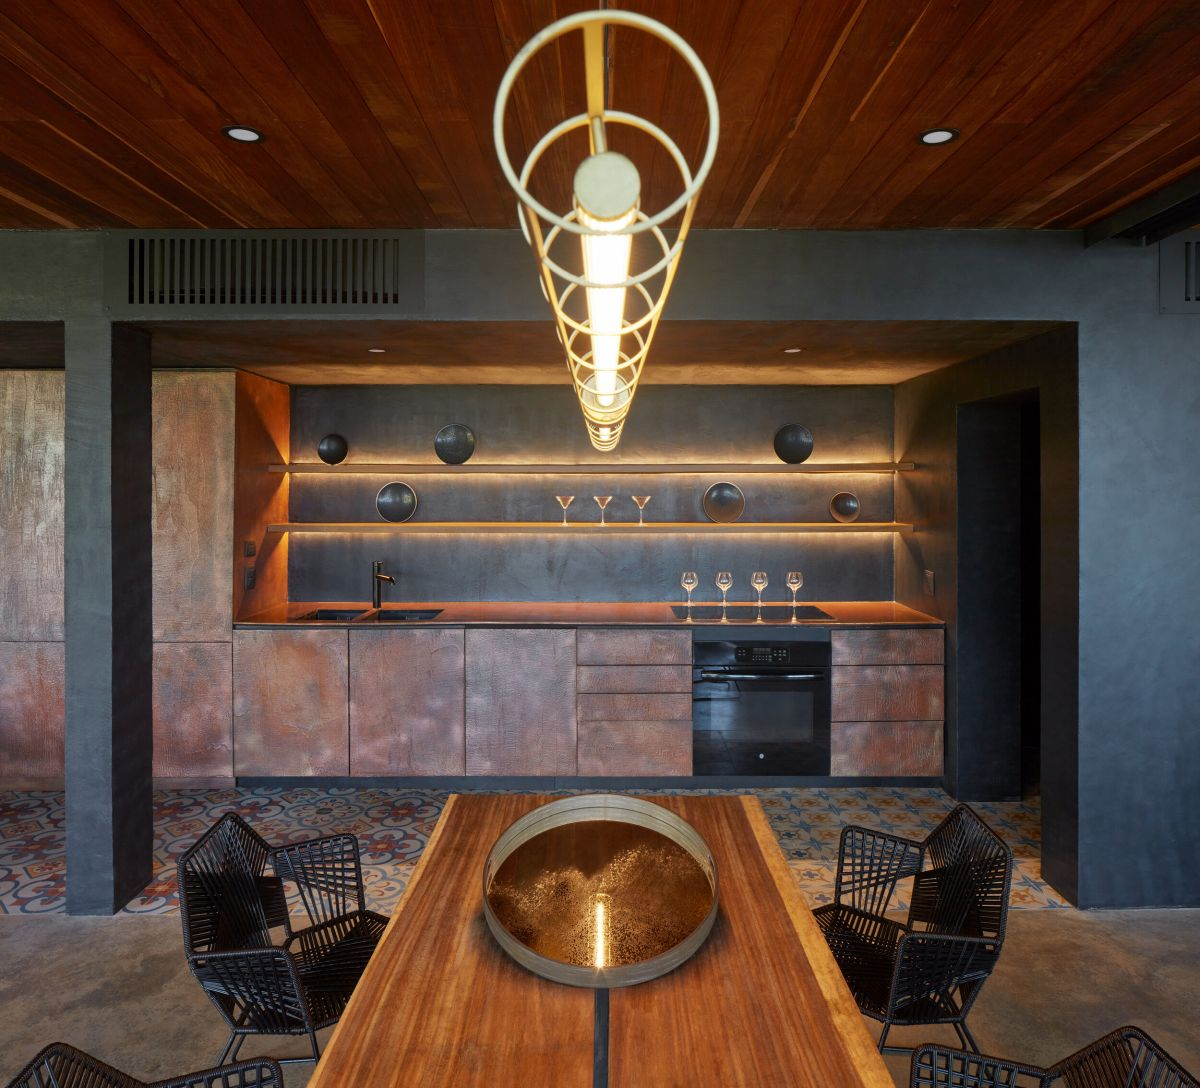 The kitchen is done with metal facades, open shelves and built in lights